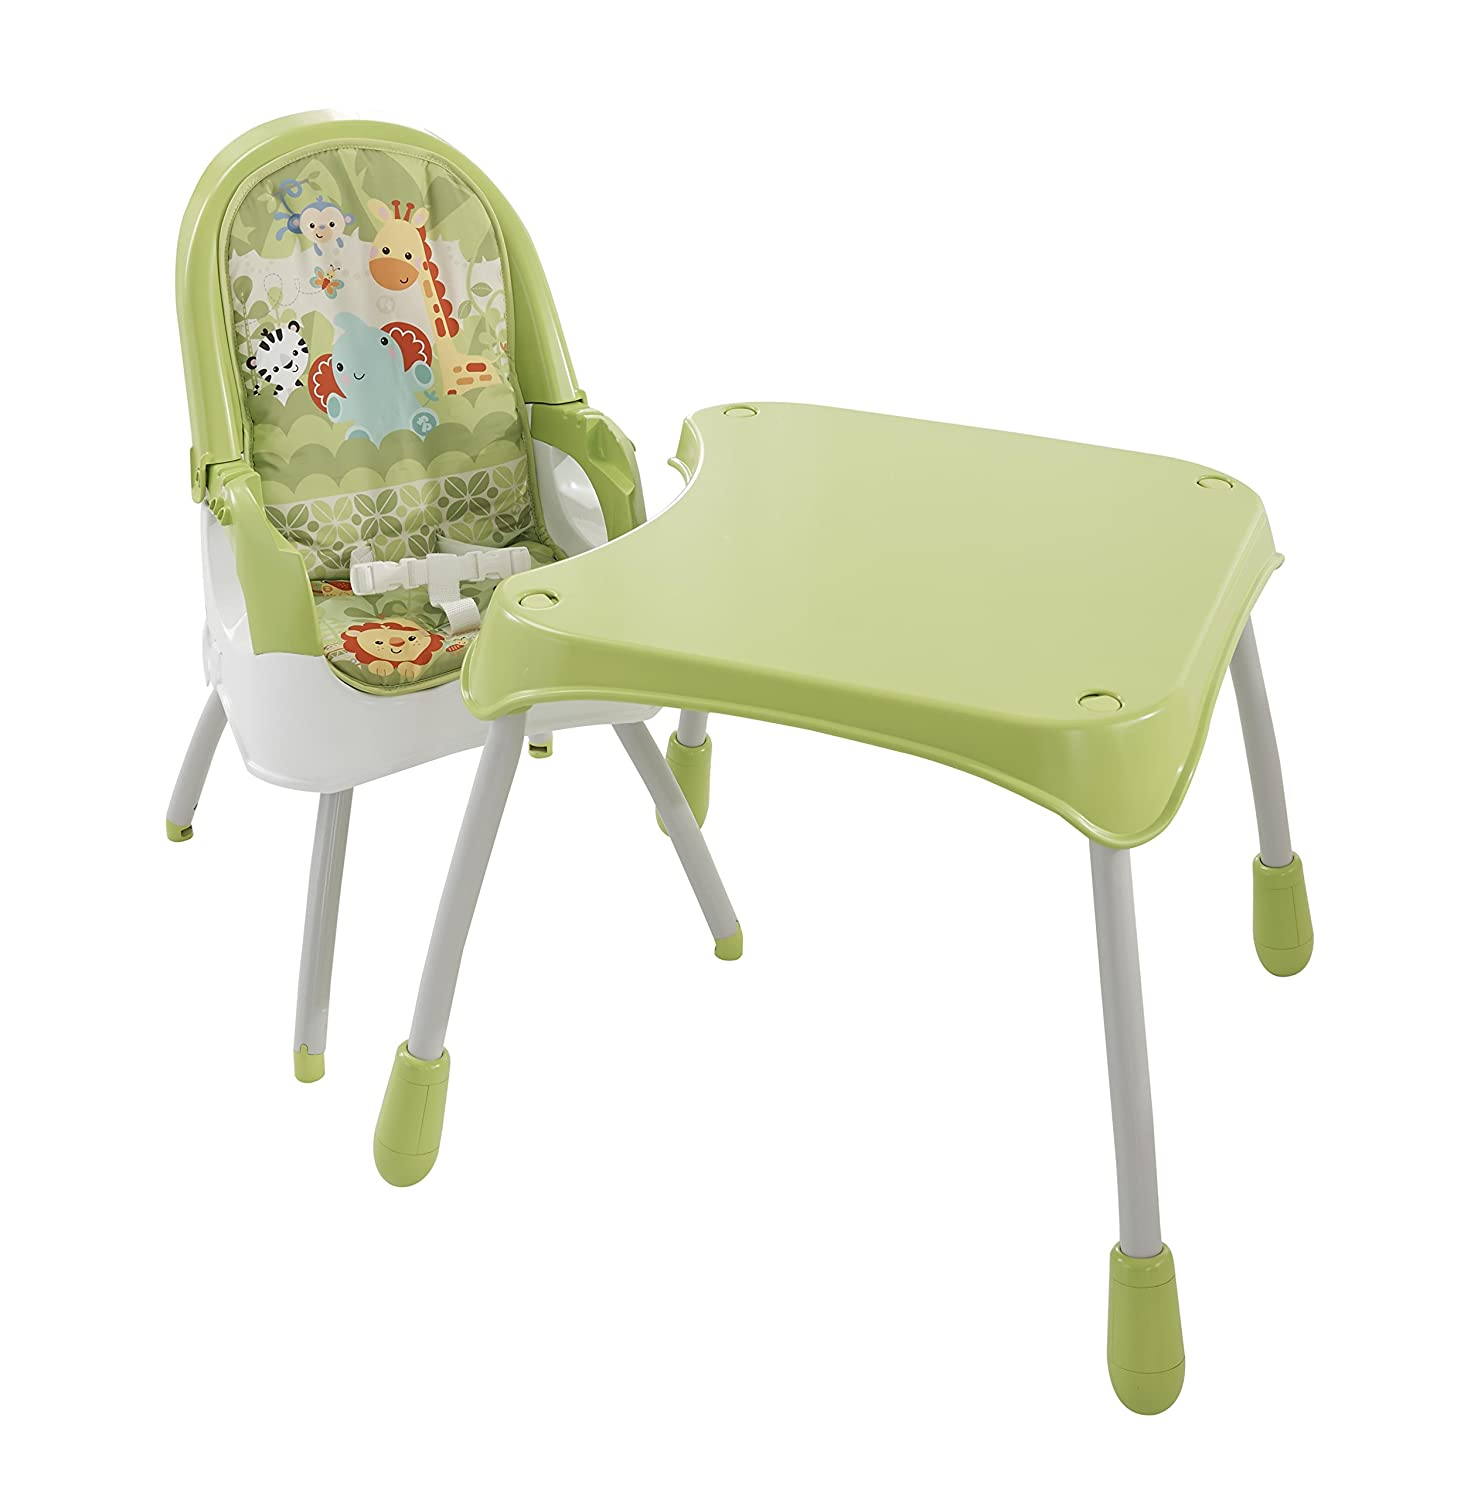 Buy Fisher Price 4 In 1 High Chair Green line at Low Prices in